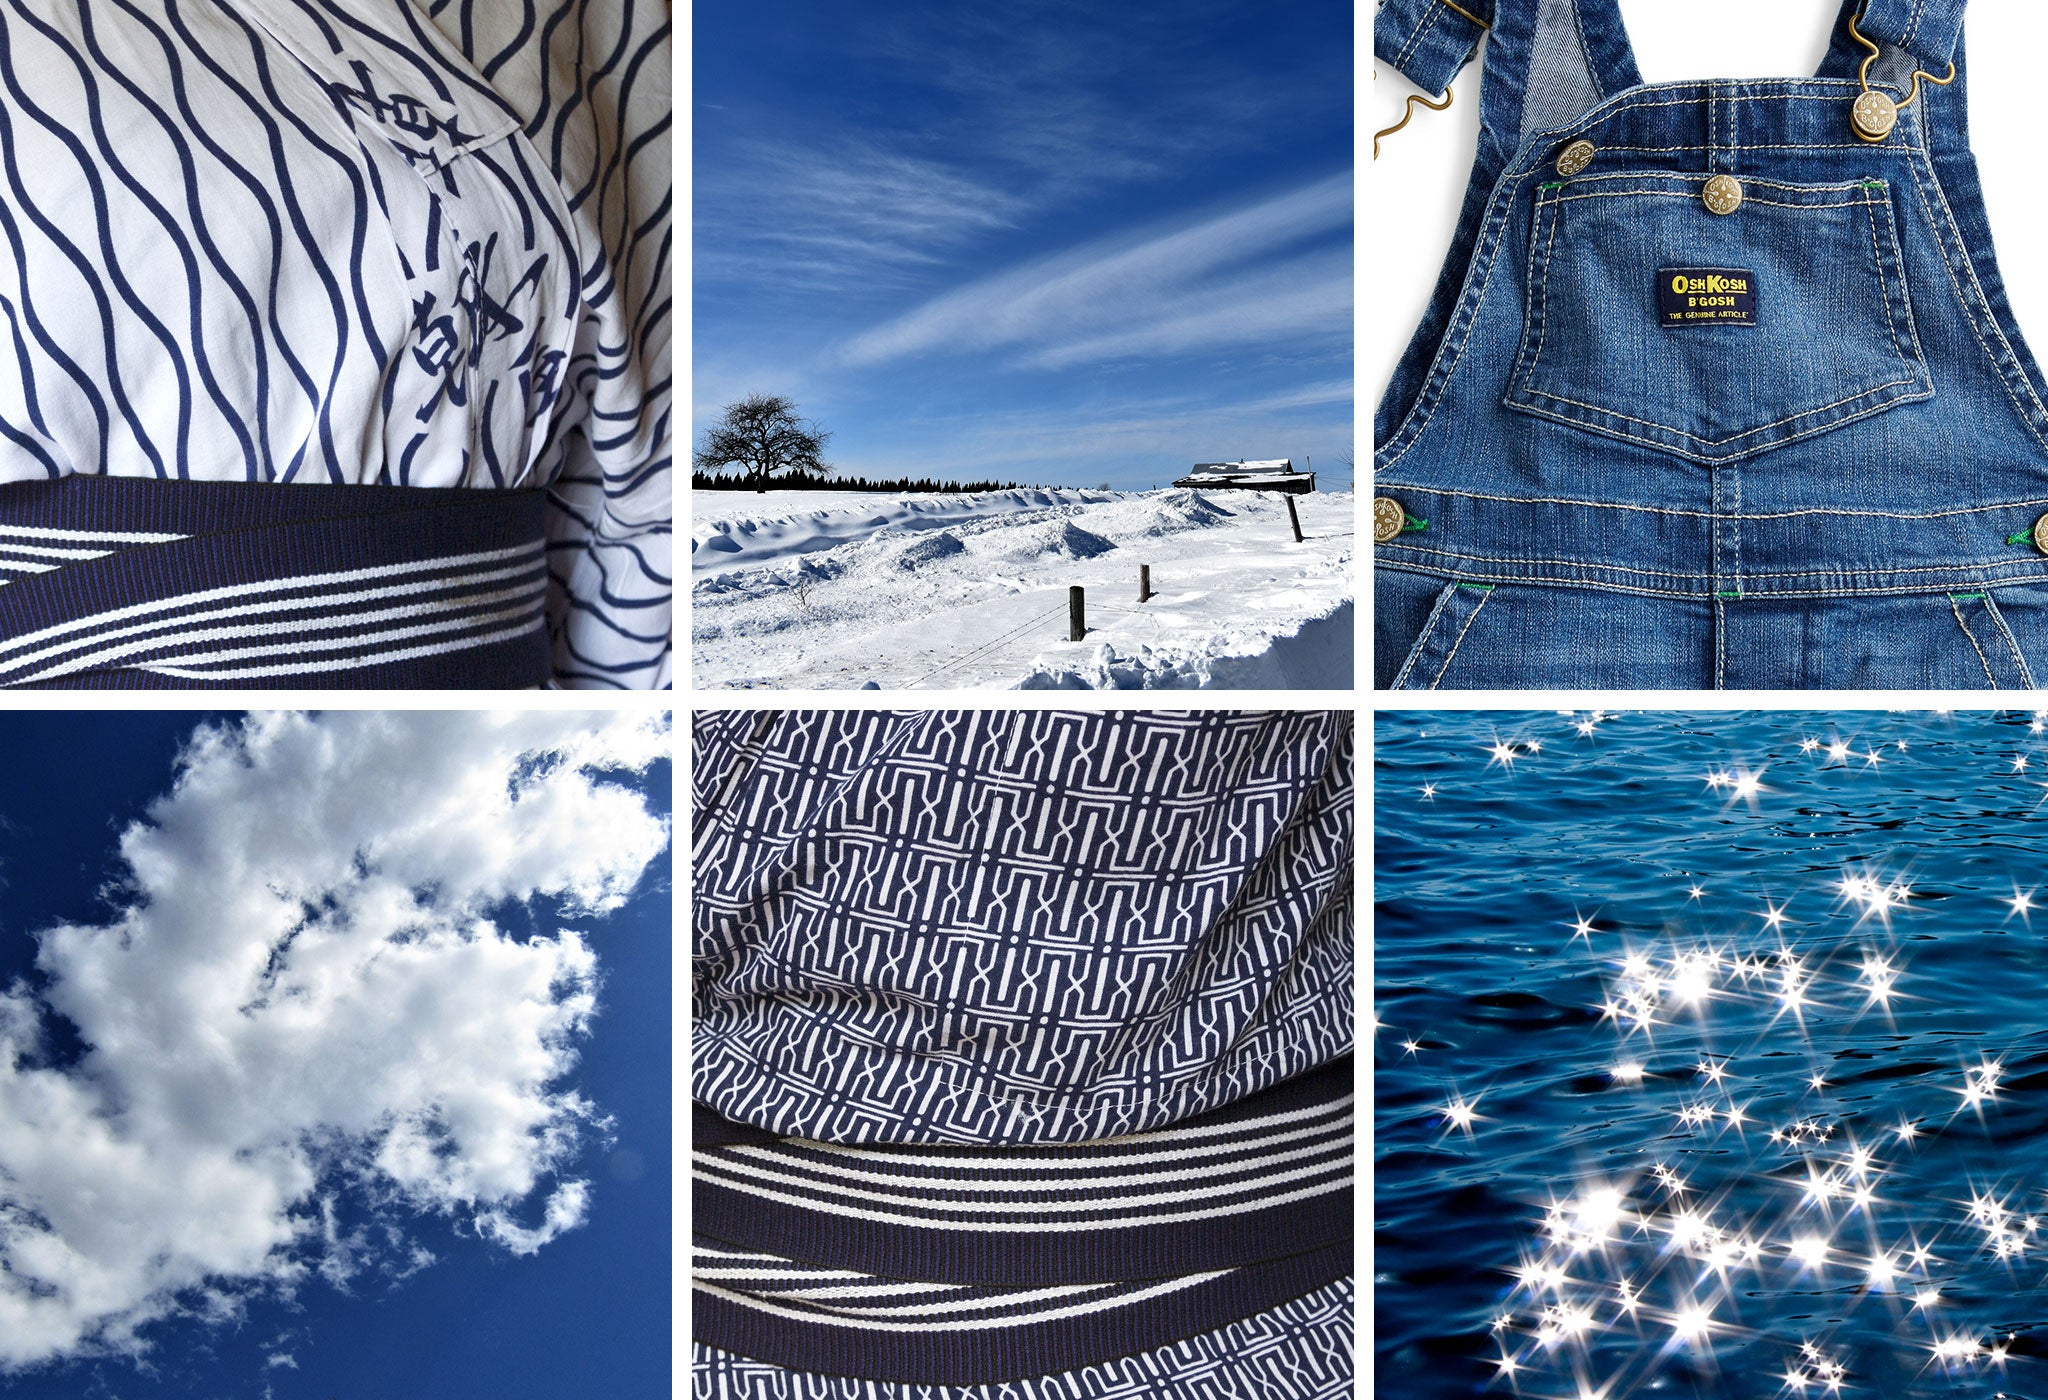 The appeal of blue and white by David Owen Hastings